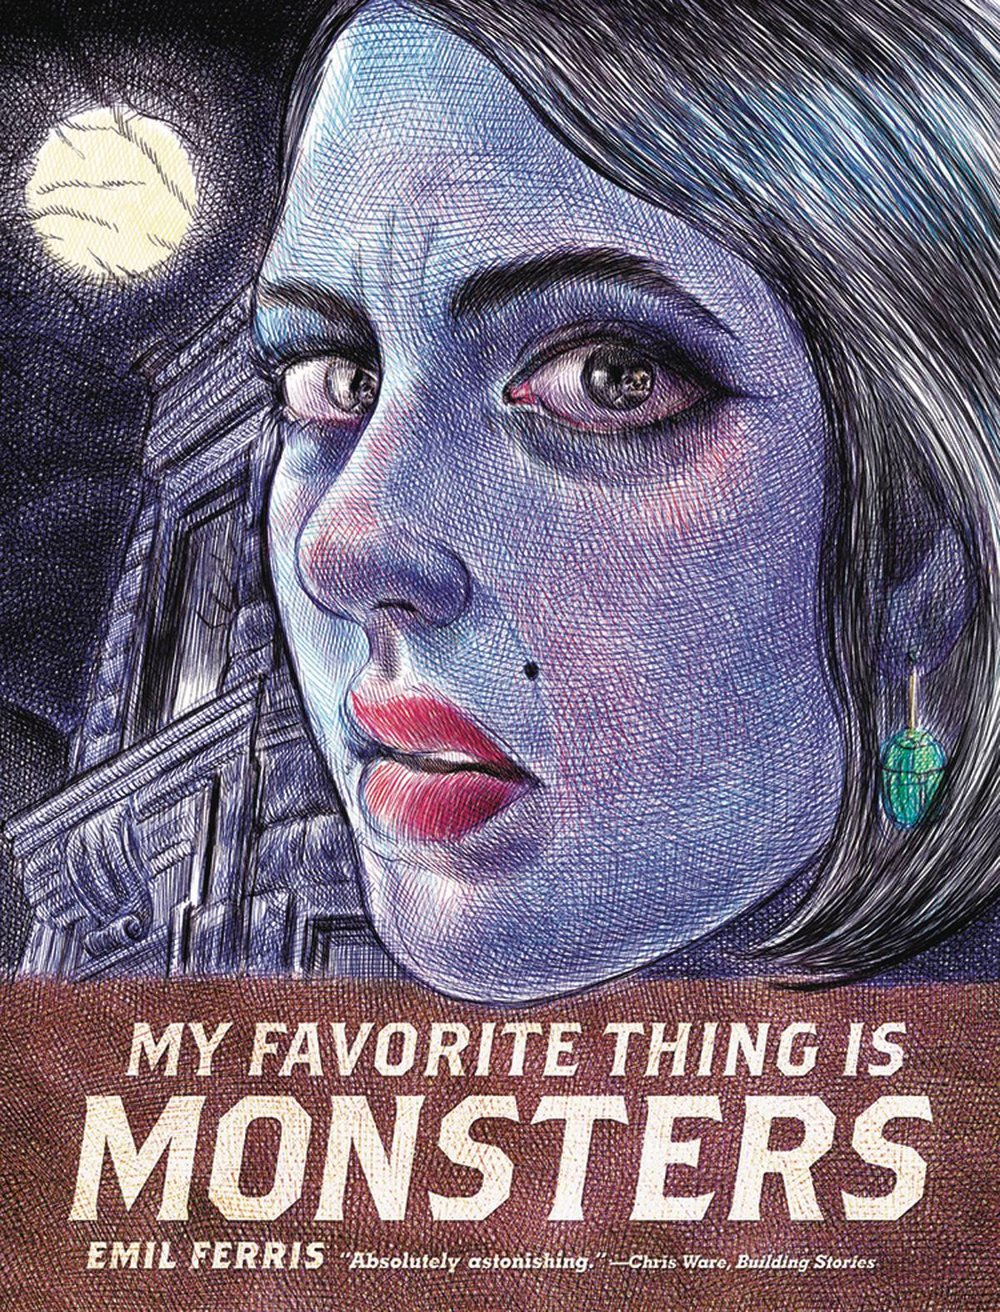 My Favorite Thing is Monsters Vol 1 - Mike's PickEmil Ferris' debut graphic novel is an absolute masterpiece.  Eschewing traditional comic book story mechanics, the tale unfolds in the form of a young girl's sketchbook/journal.  10-year-old Karen Reyes loves monsters and even imagines herself as a werewolf within the pages of her journal.  She draws versions of monster magazine covers that function as chapter breaks for the reader.  She's also investigating the murder of her neighbor, a Holocaust survivor, while dealing with family issues and day to day life in Civil Rights era Chicago.  The theme of fictional monsters contrasted against real life monsters is cleverly explored in Karen's journal entries.  Additionally, the artwork looks to be entirely done in intricate pen and ink.  MY FAVORITE THING IS MONSTERS announces a fantastic new talent to the medium.  It's easily one of the best books I've read within the last five years.  Book one is available now with the concluding volume currently scheduled for an April release.